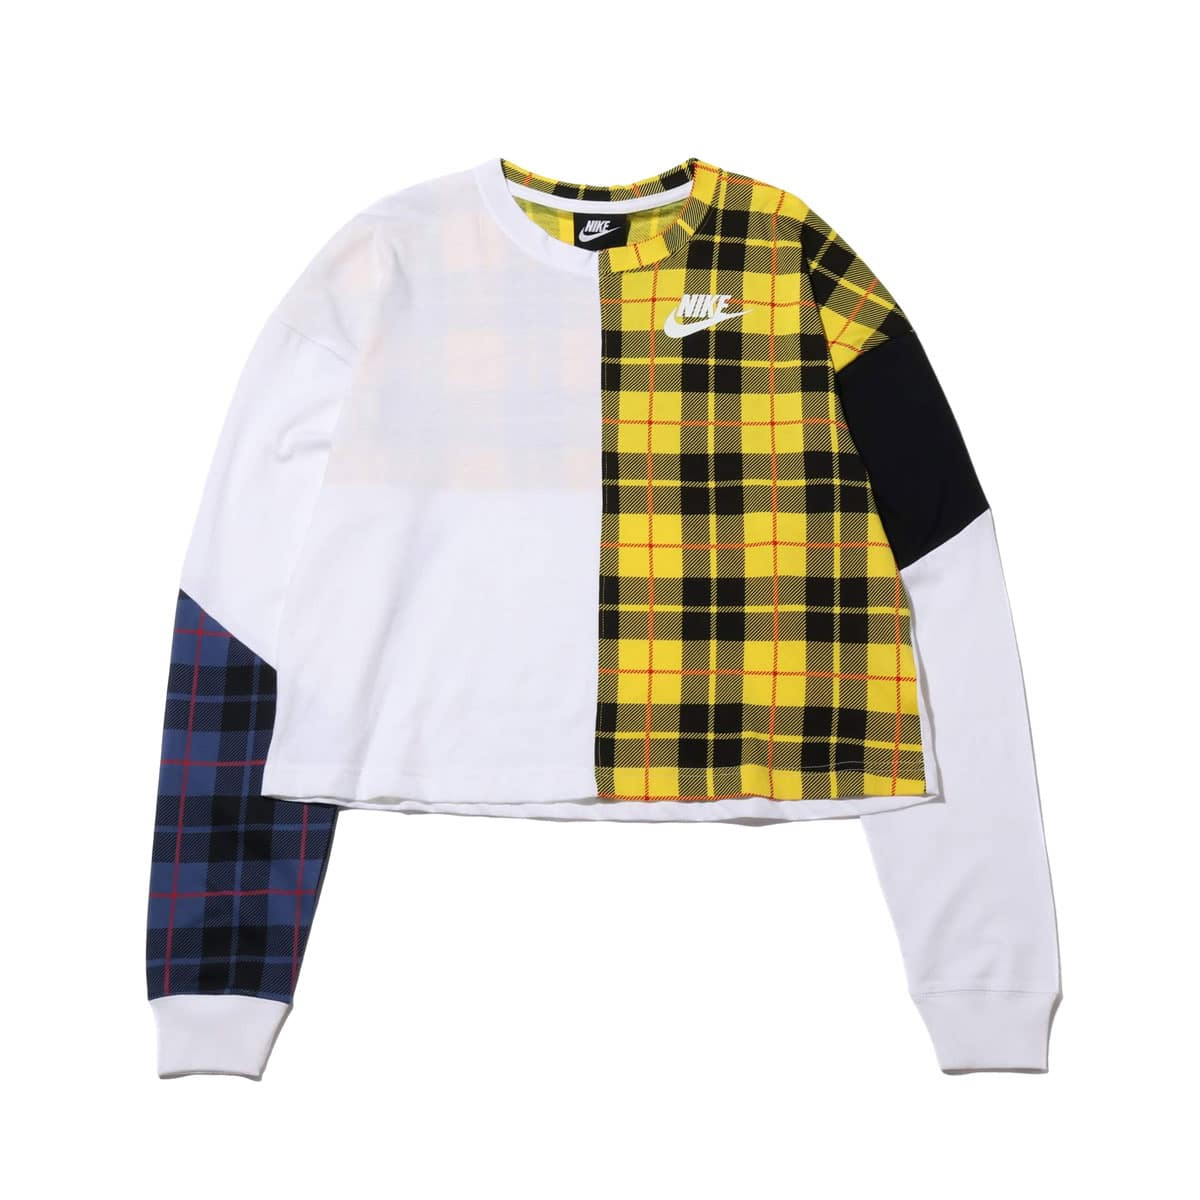 NIKE AS W NSW TOP LS PLAID WHITE/BLACK/WHITE 19FA-S_photo_large